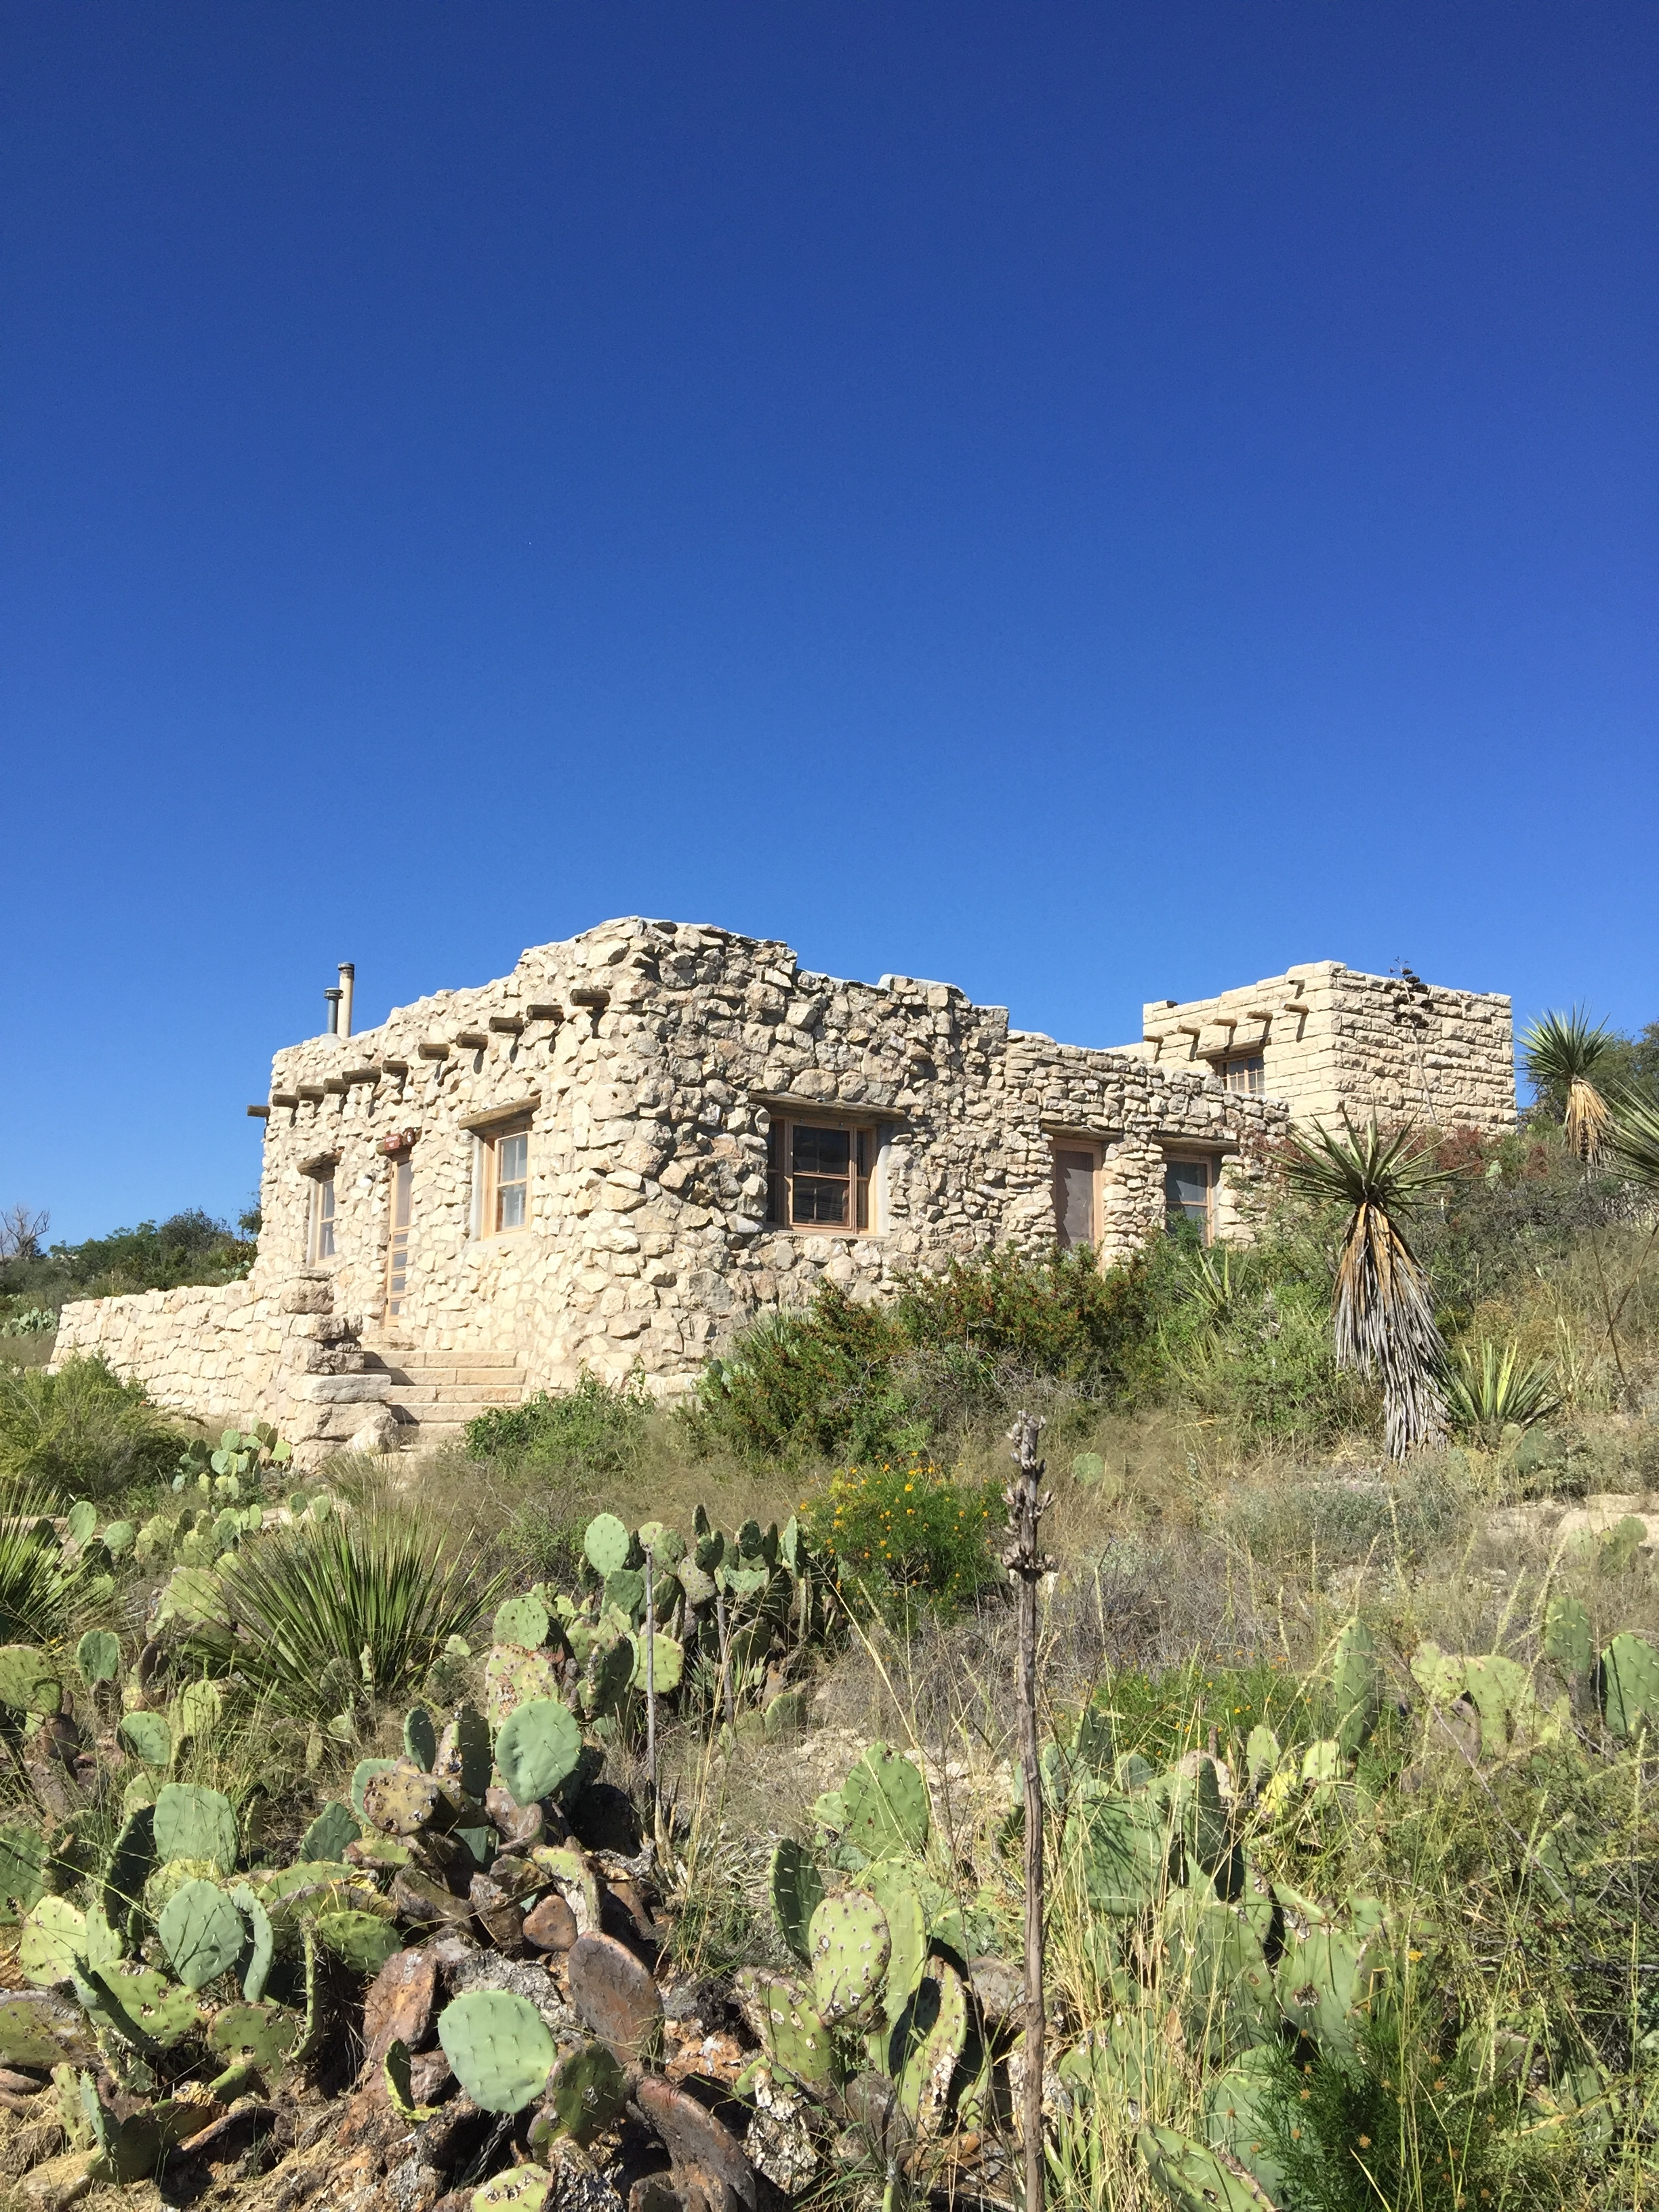 Carlsbad Caverns National Park, NM